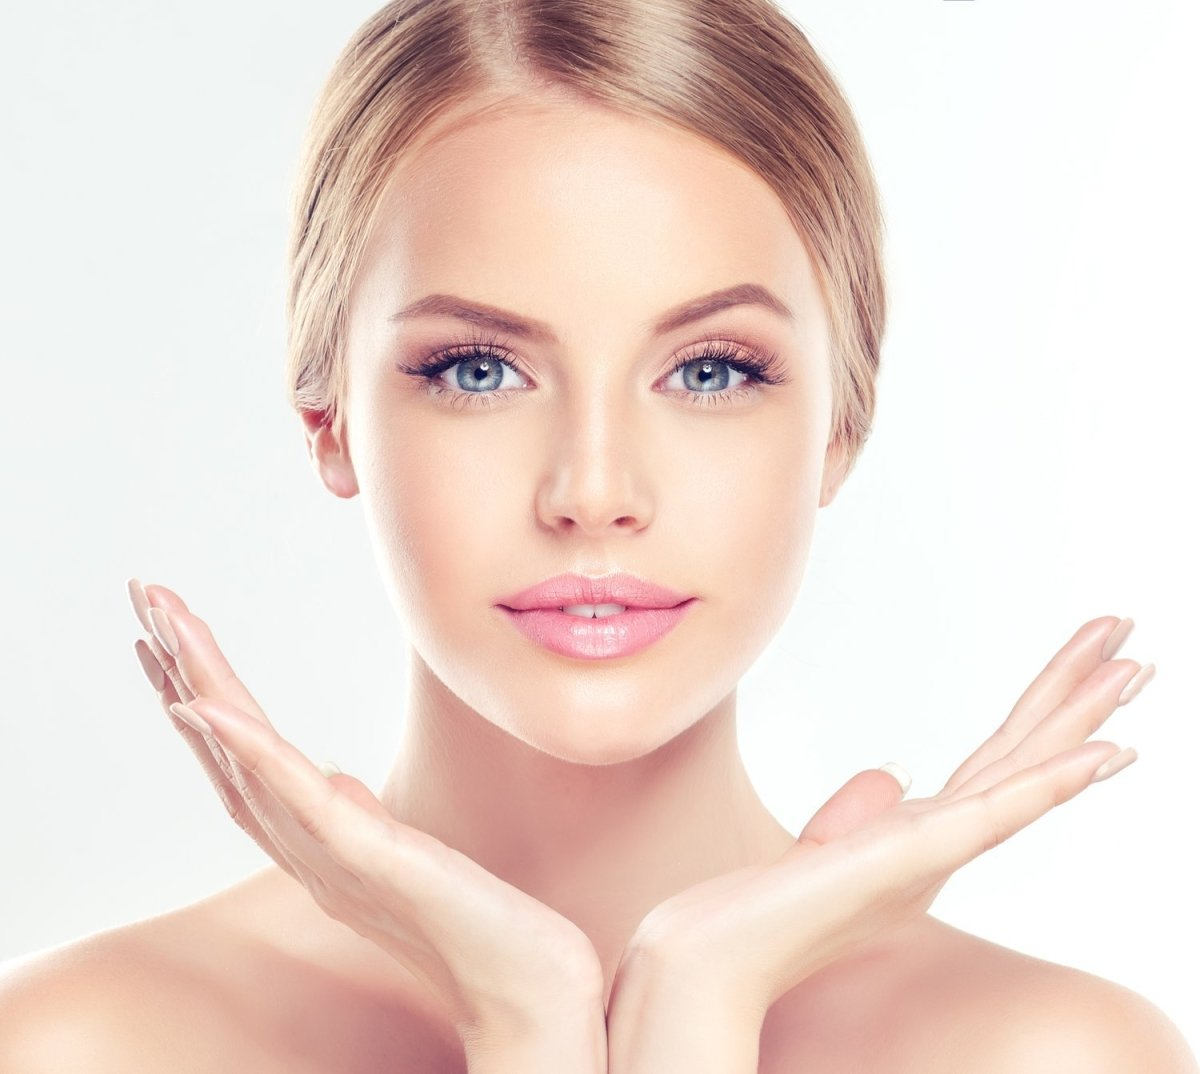 Microneedling - The solution for beautiful skin